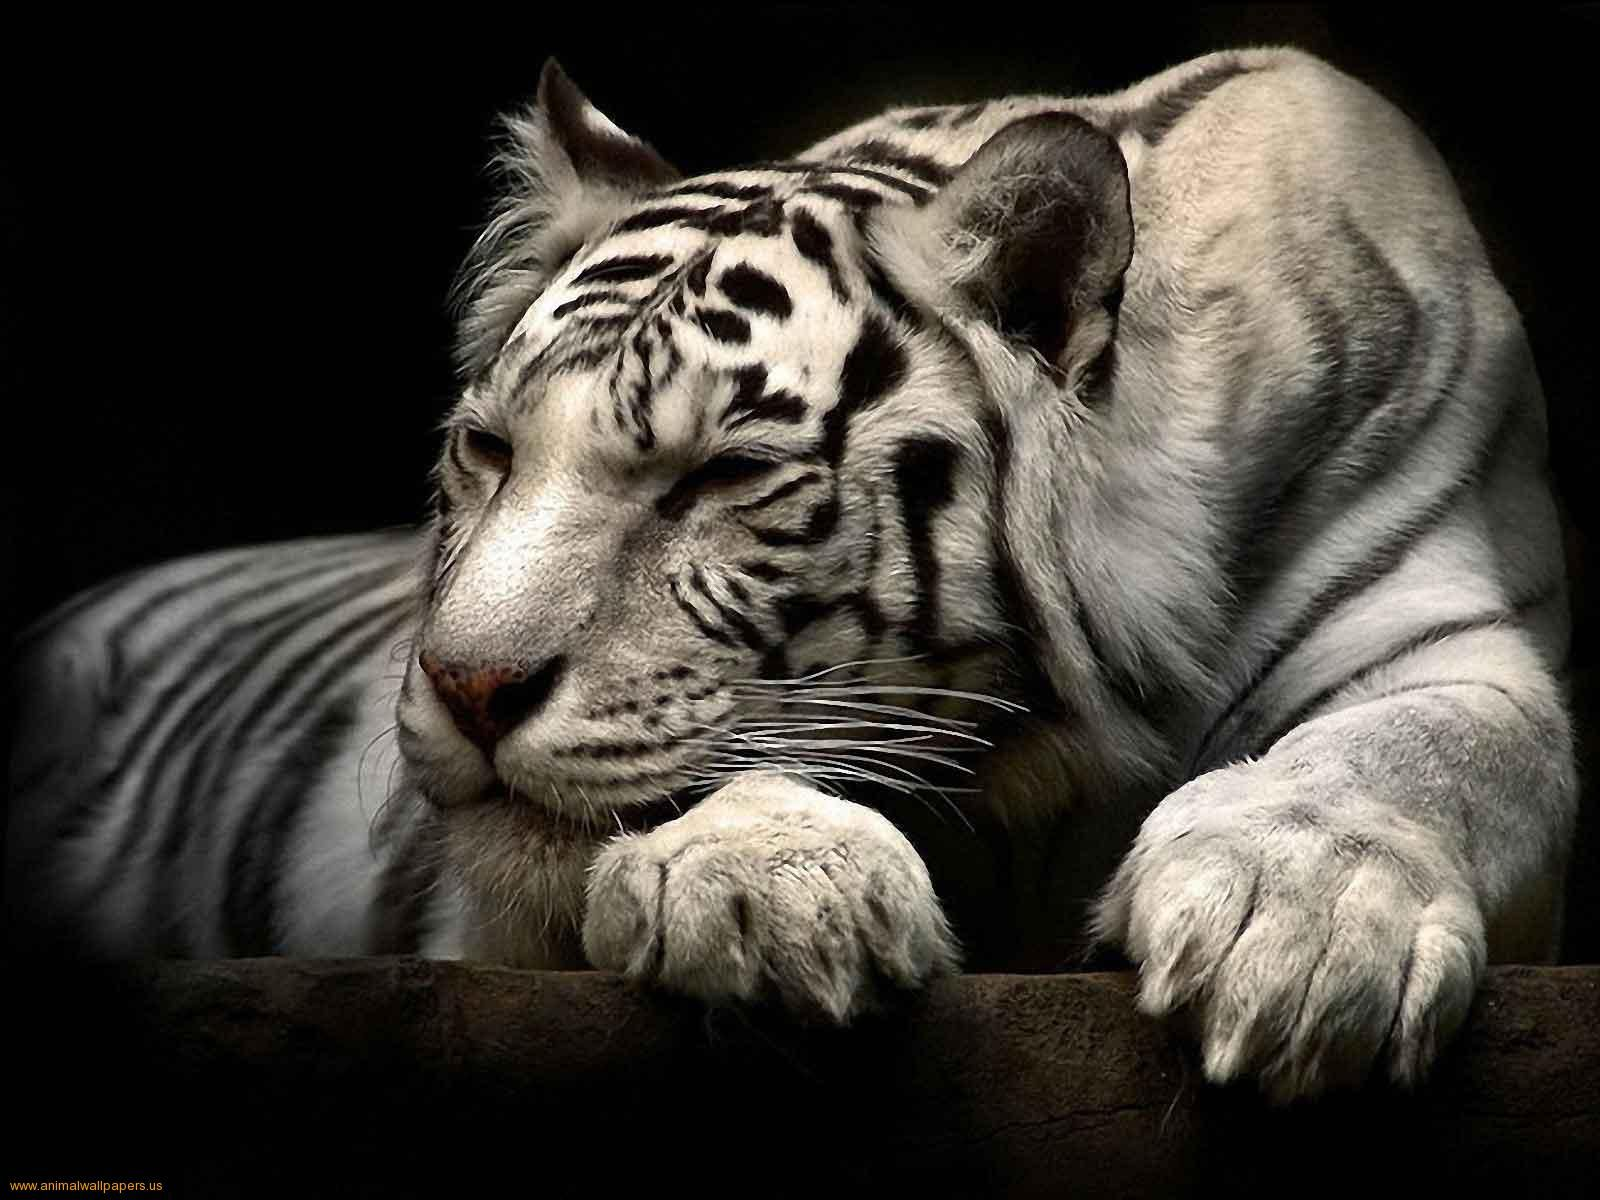 when stressed or confused, all white tigers cross their eyes